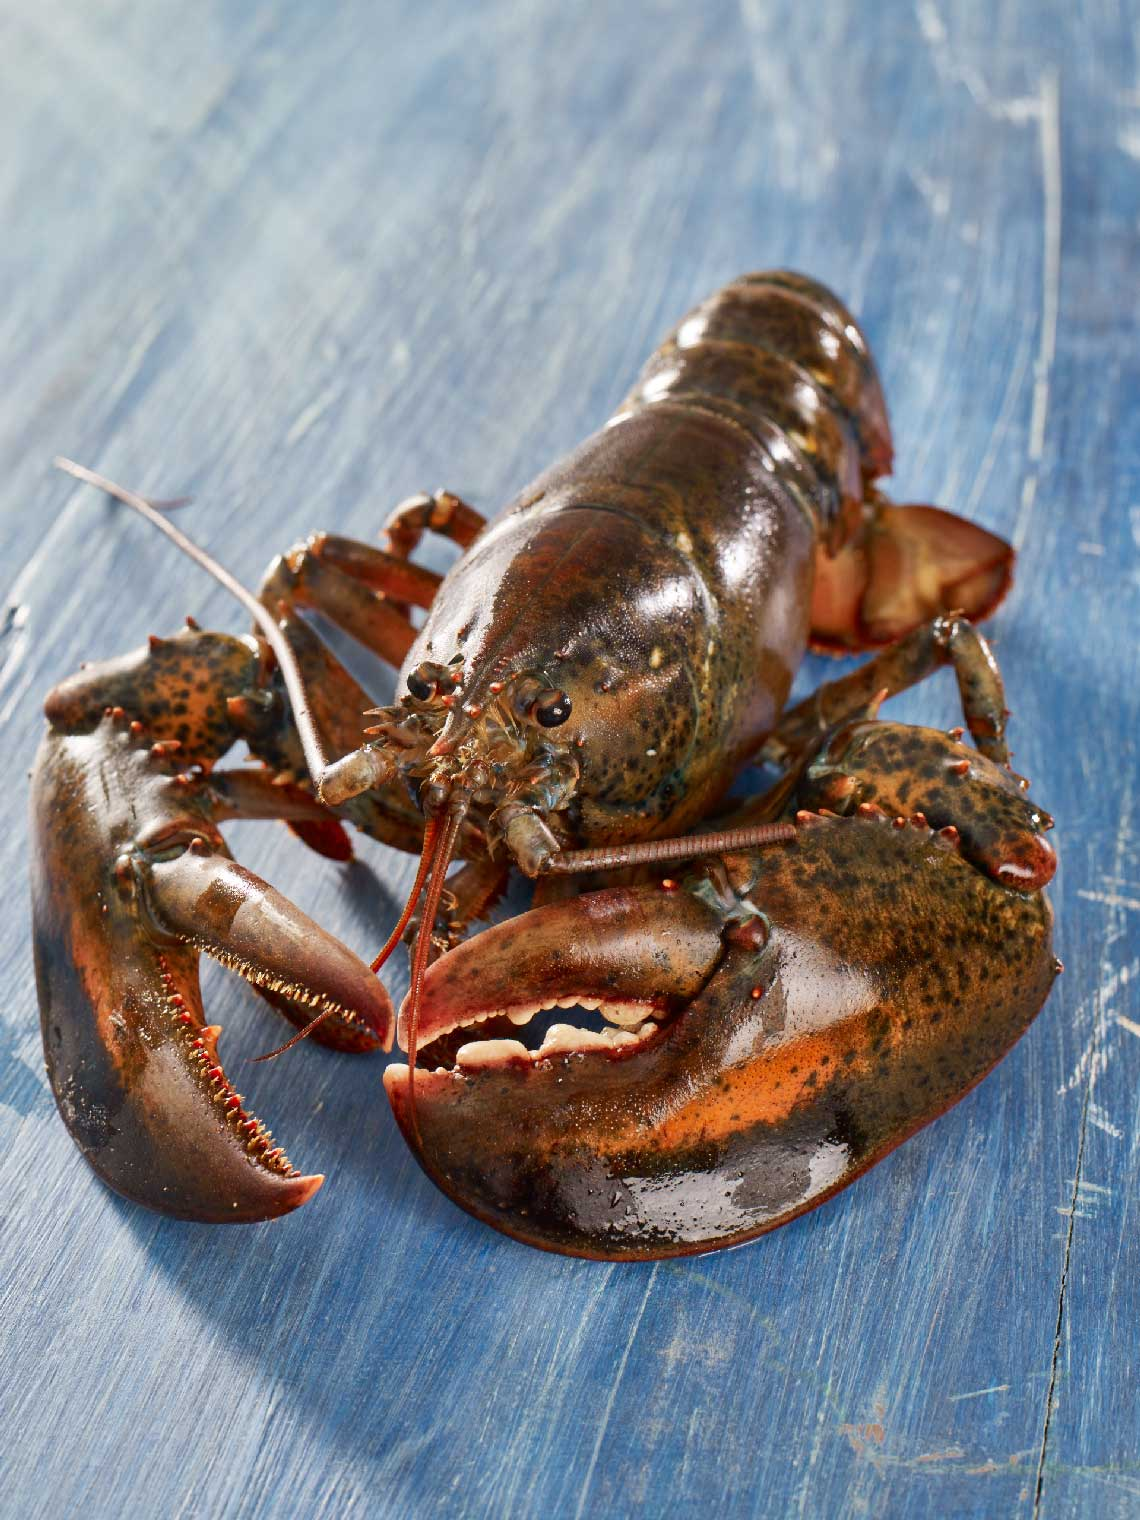 Whole Raw Lobster